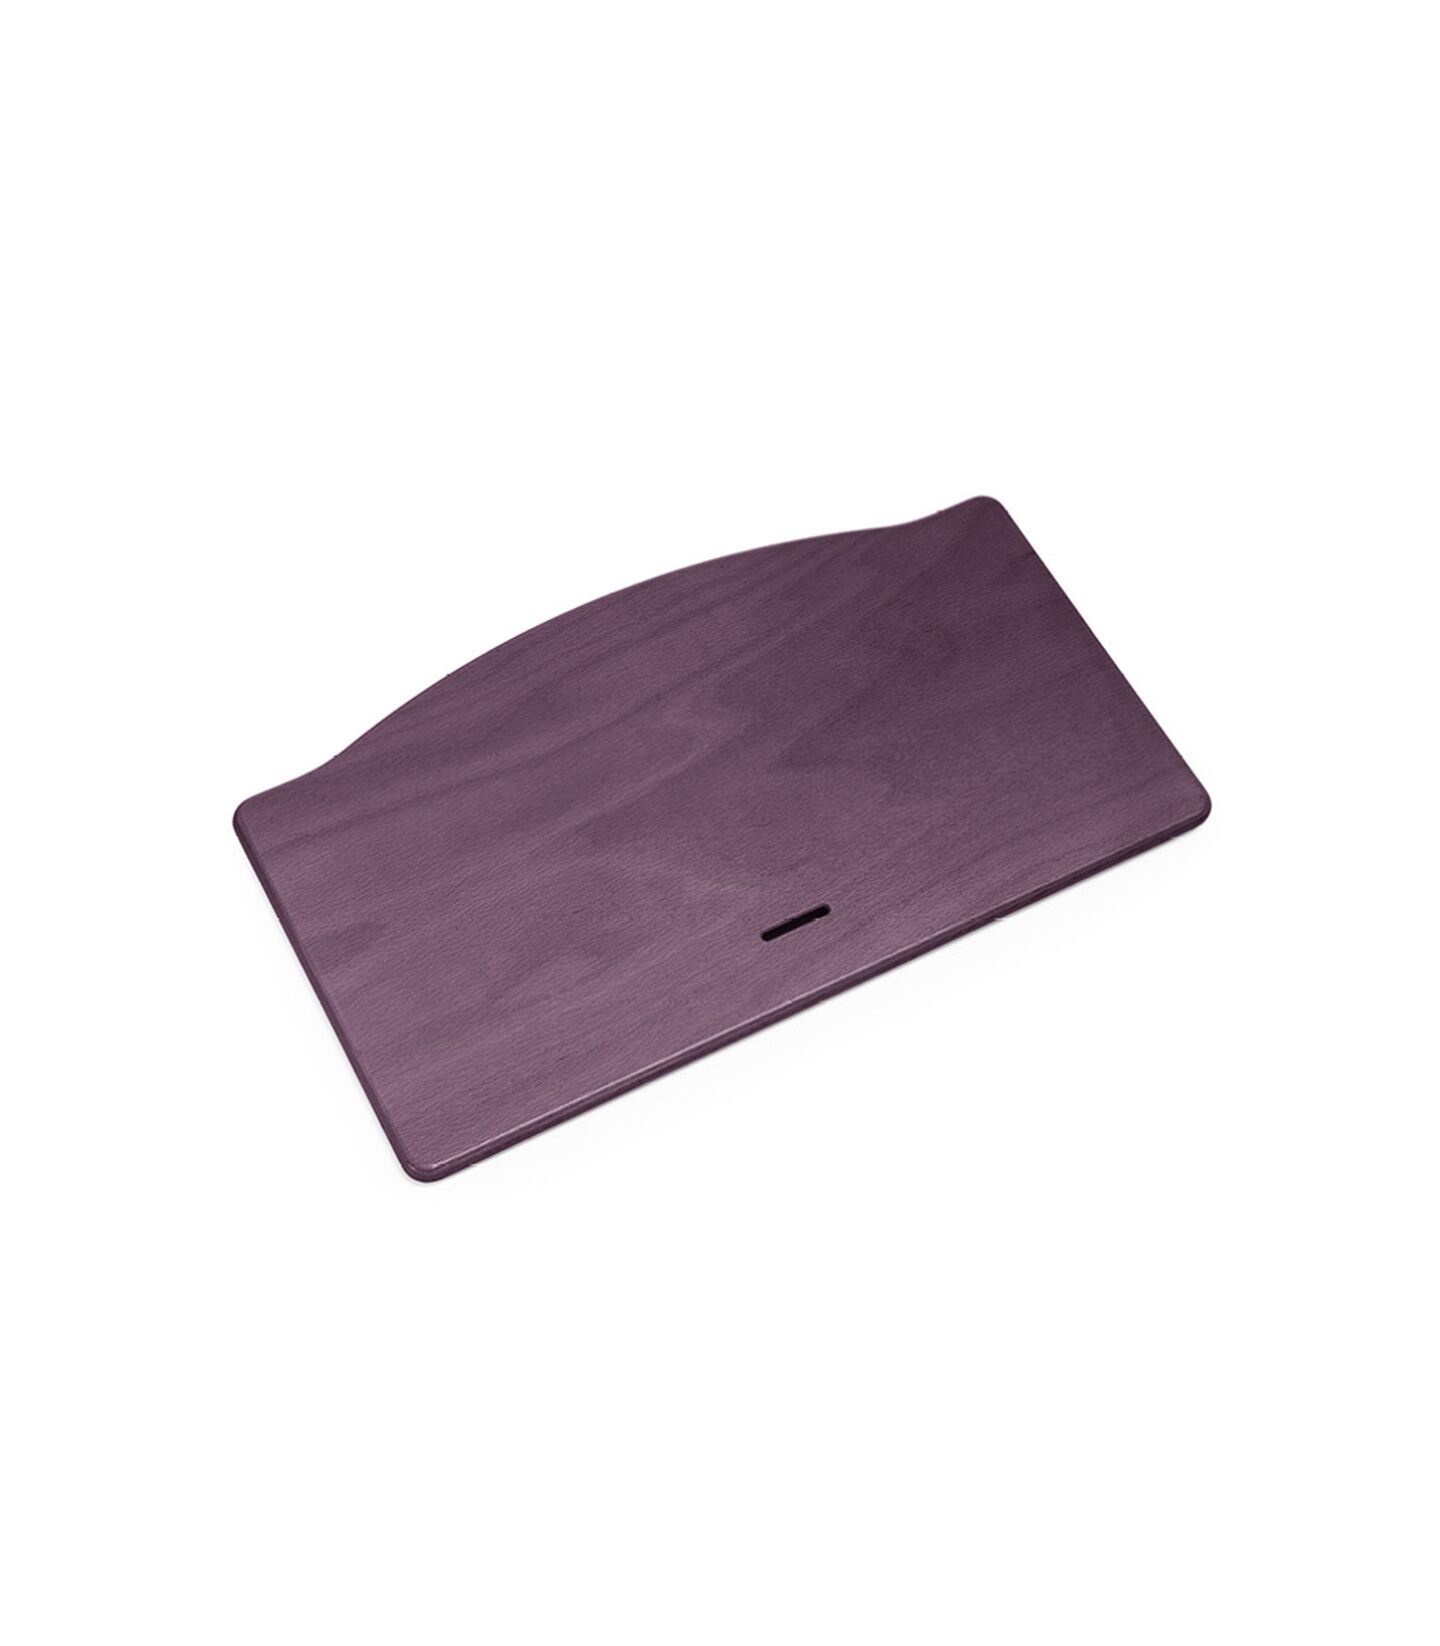 Tripp Trapp® Seatplate Plum Purple, Prune, mainview view 2